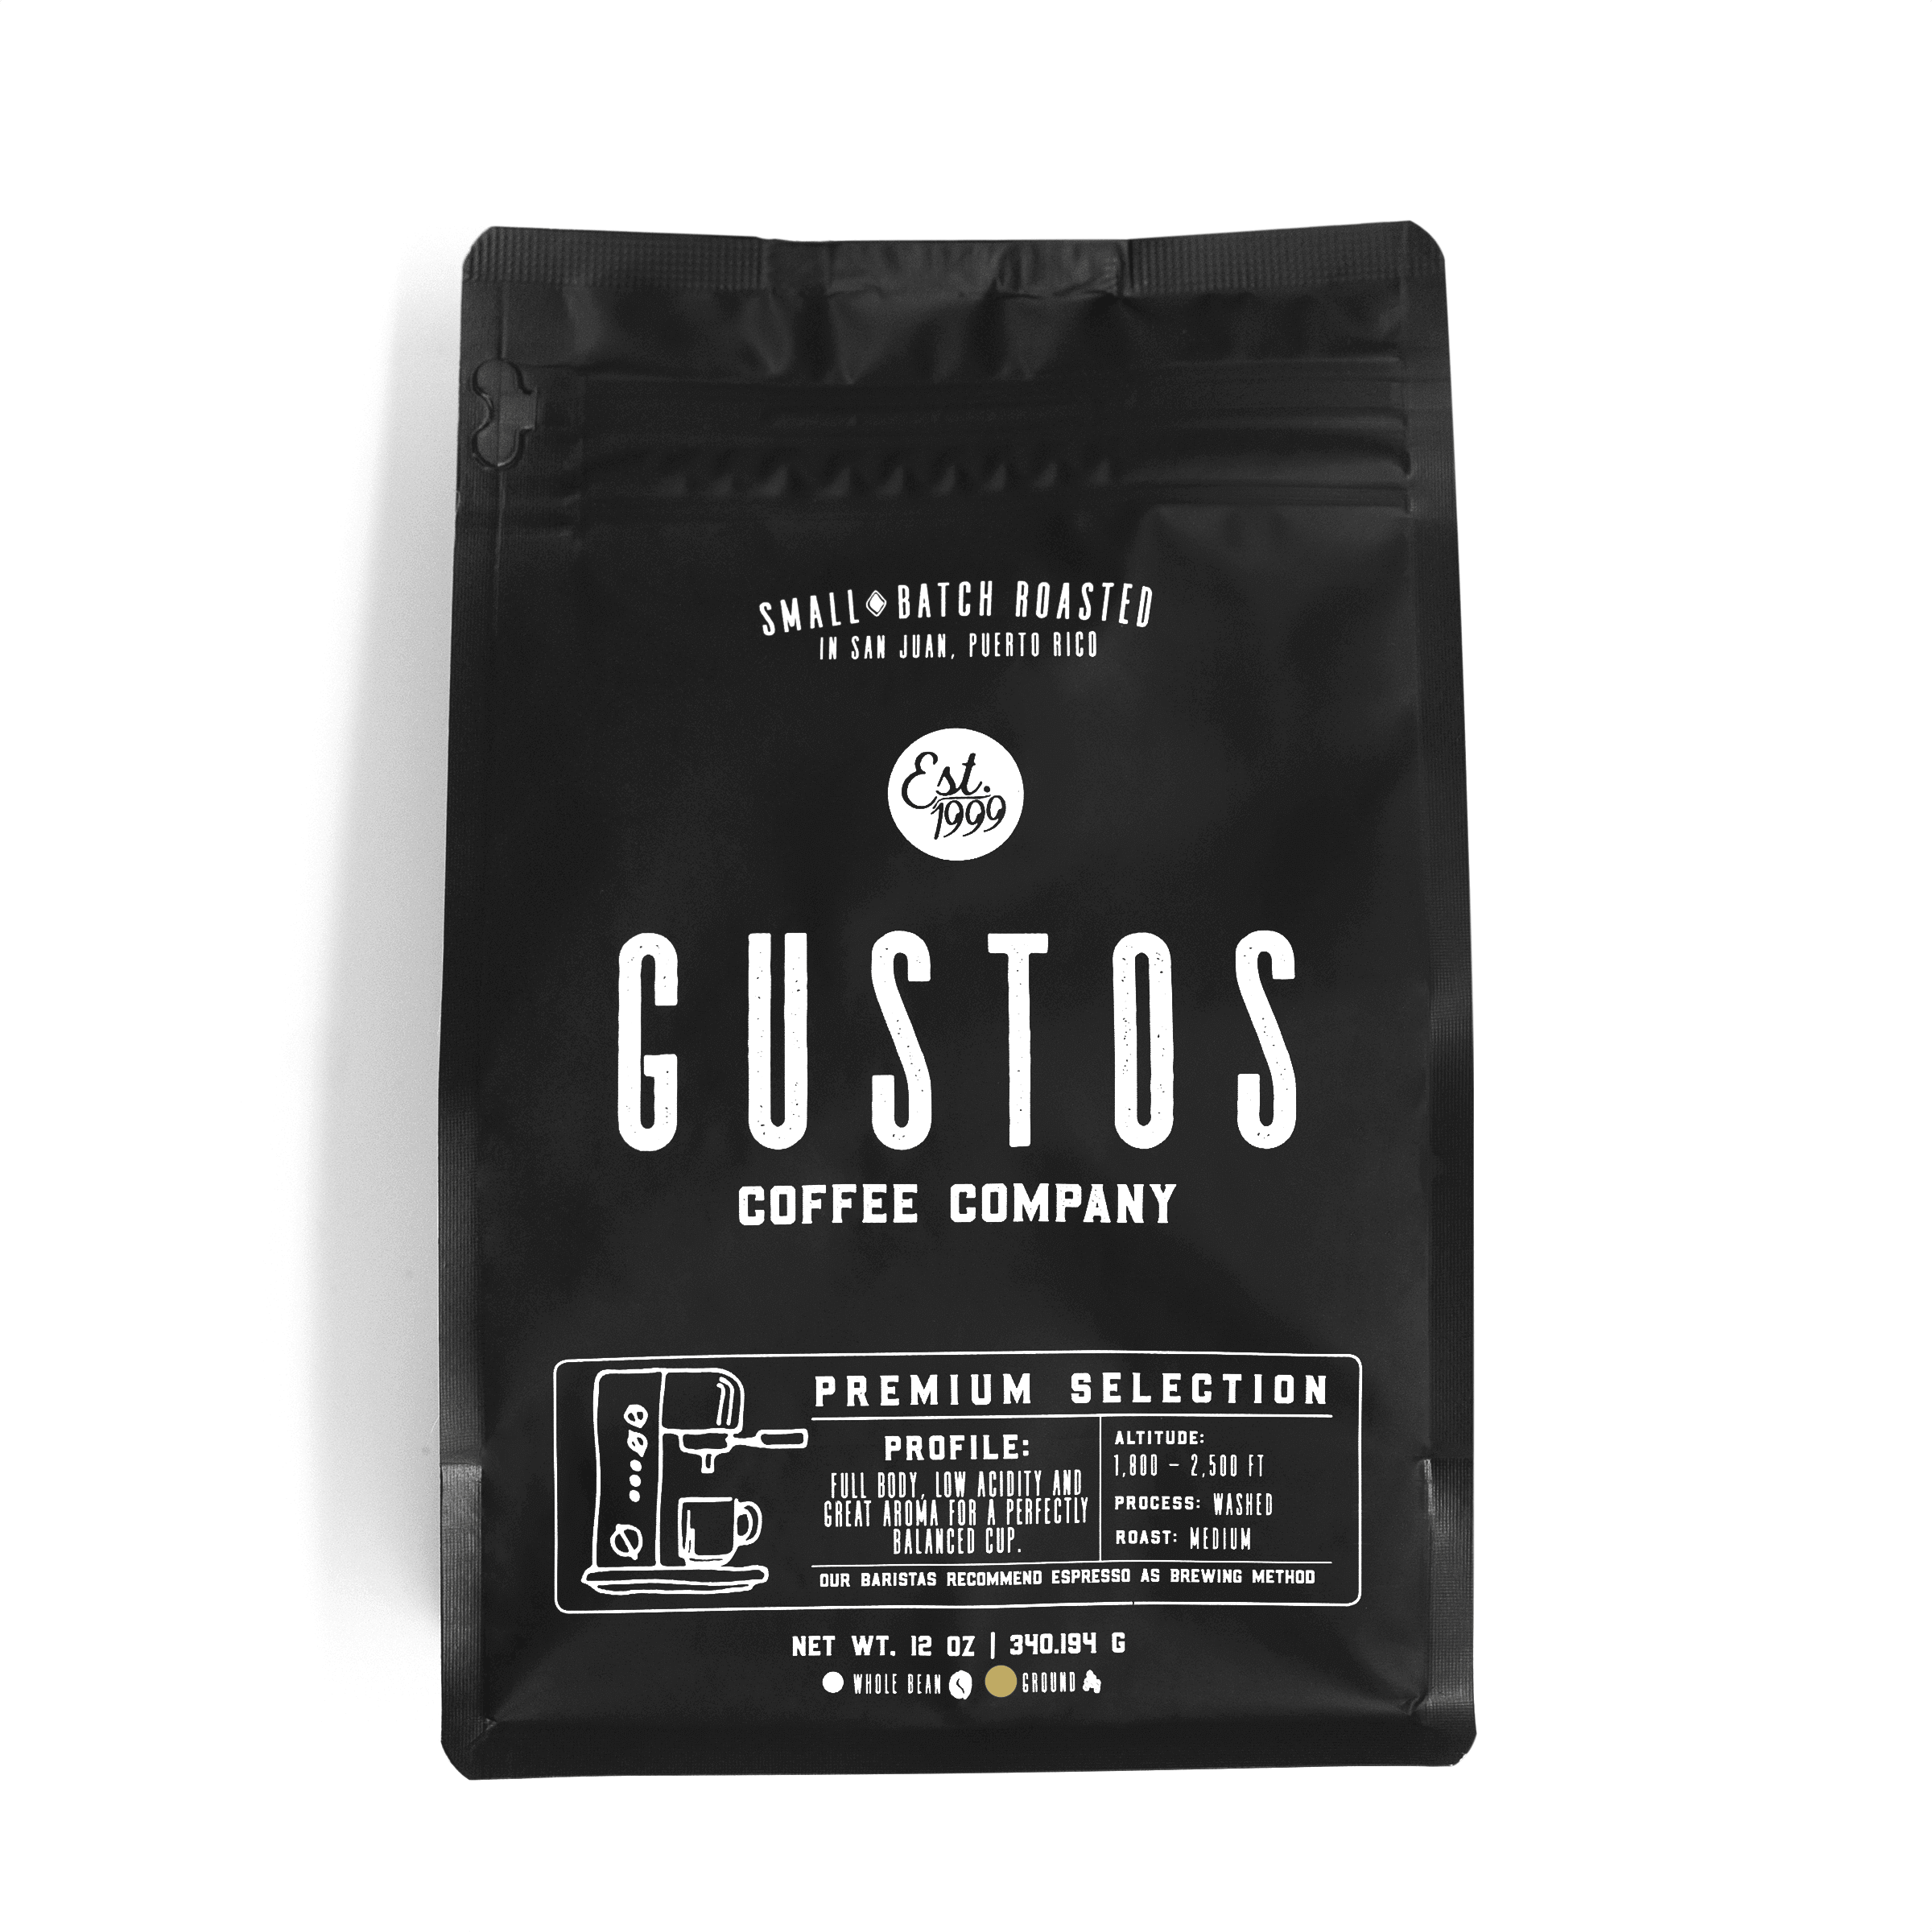 Gustos Premium Selection 12 oz Ground Coffee Puerto Rico